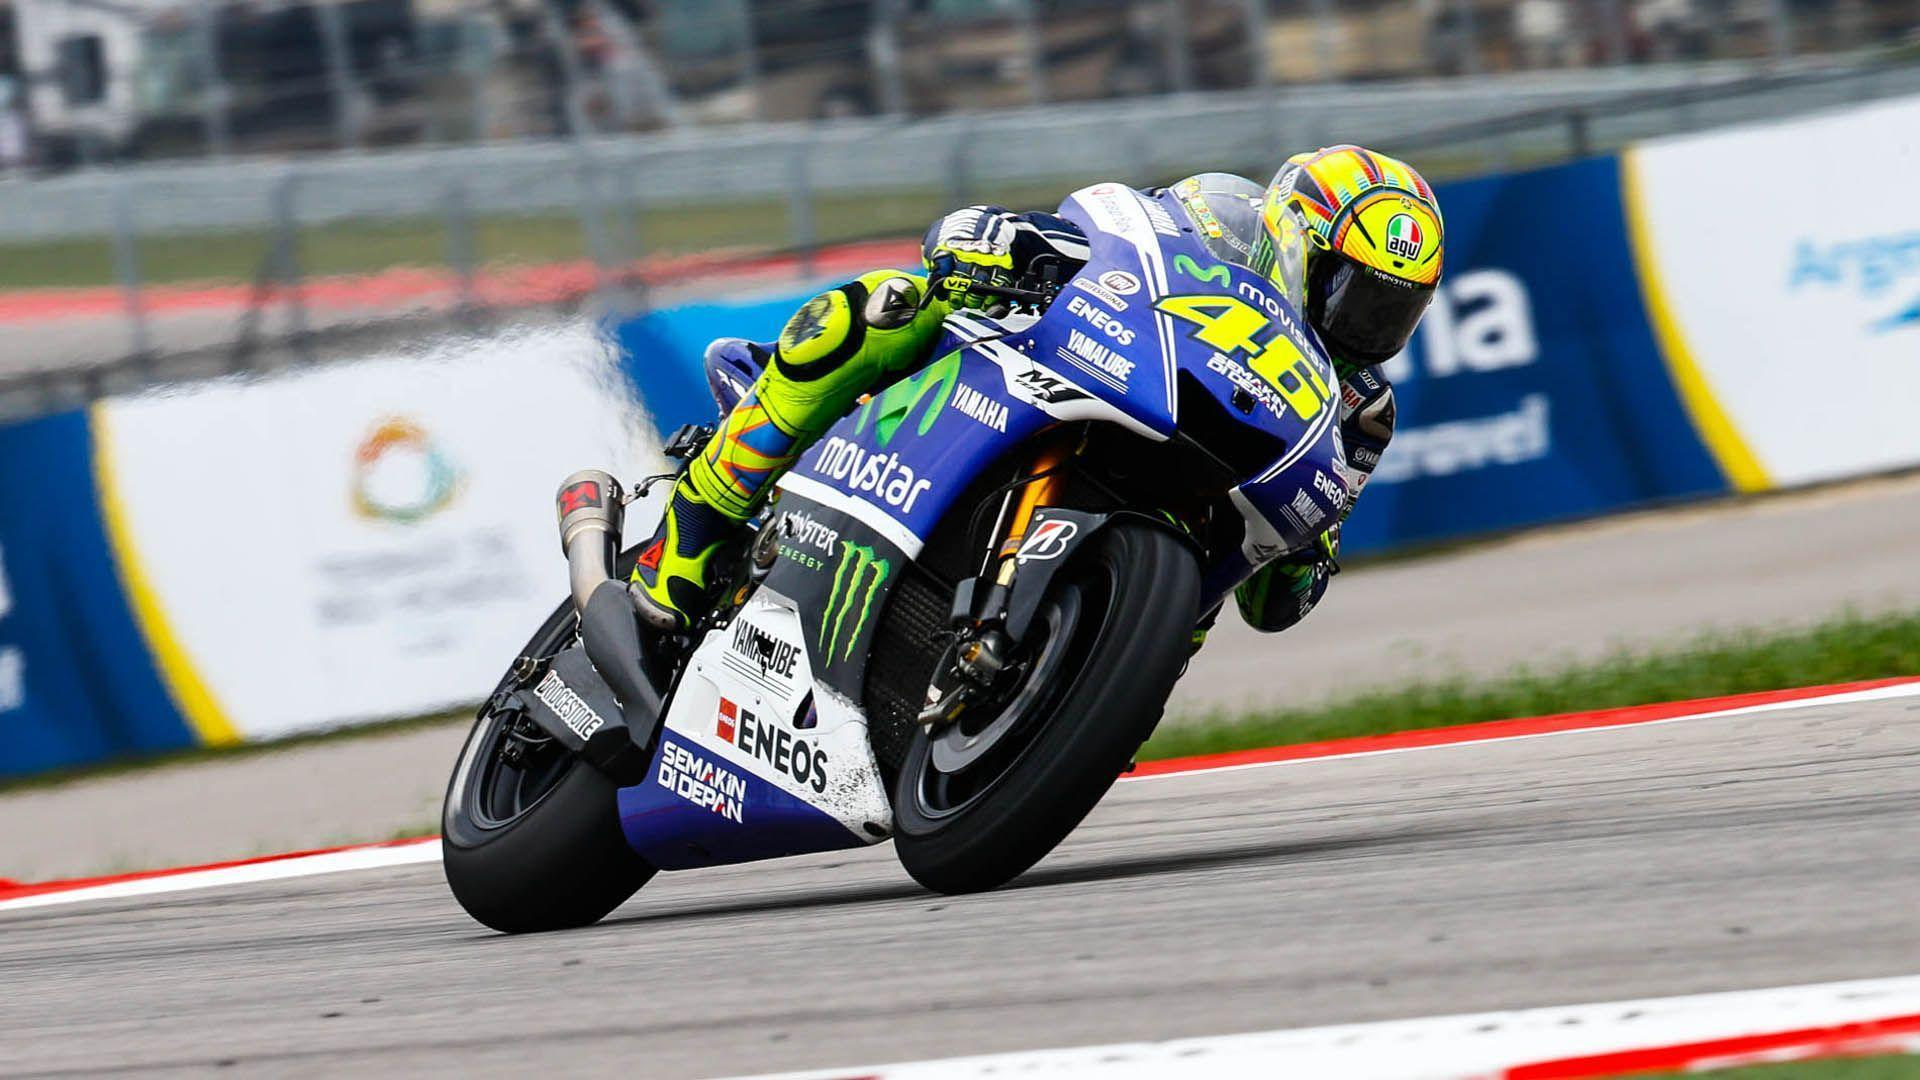 Rossi Wallpapers